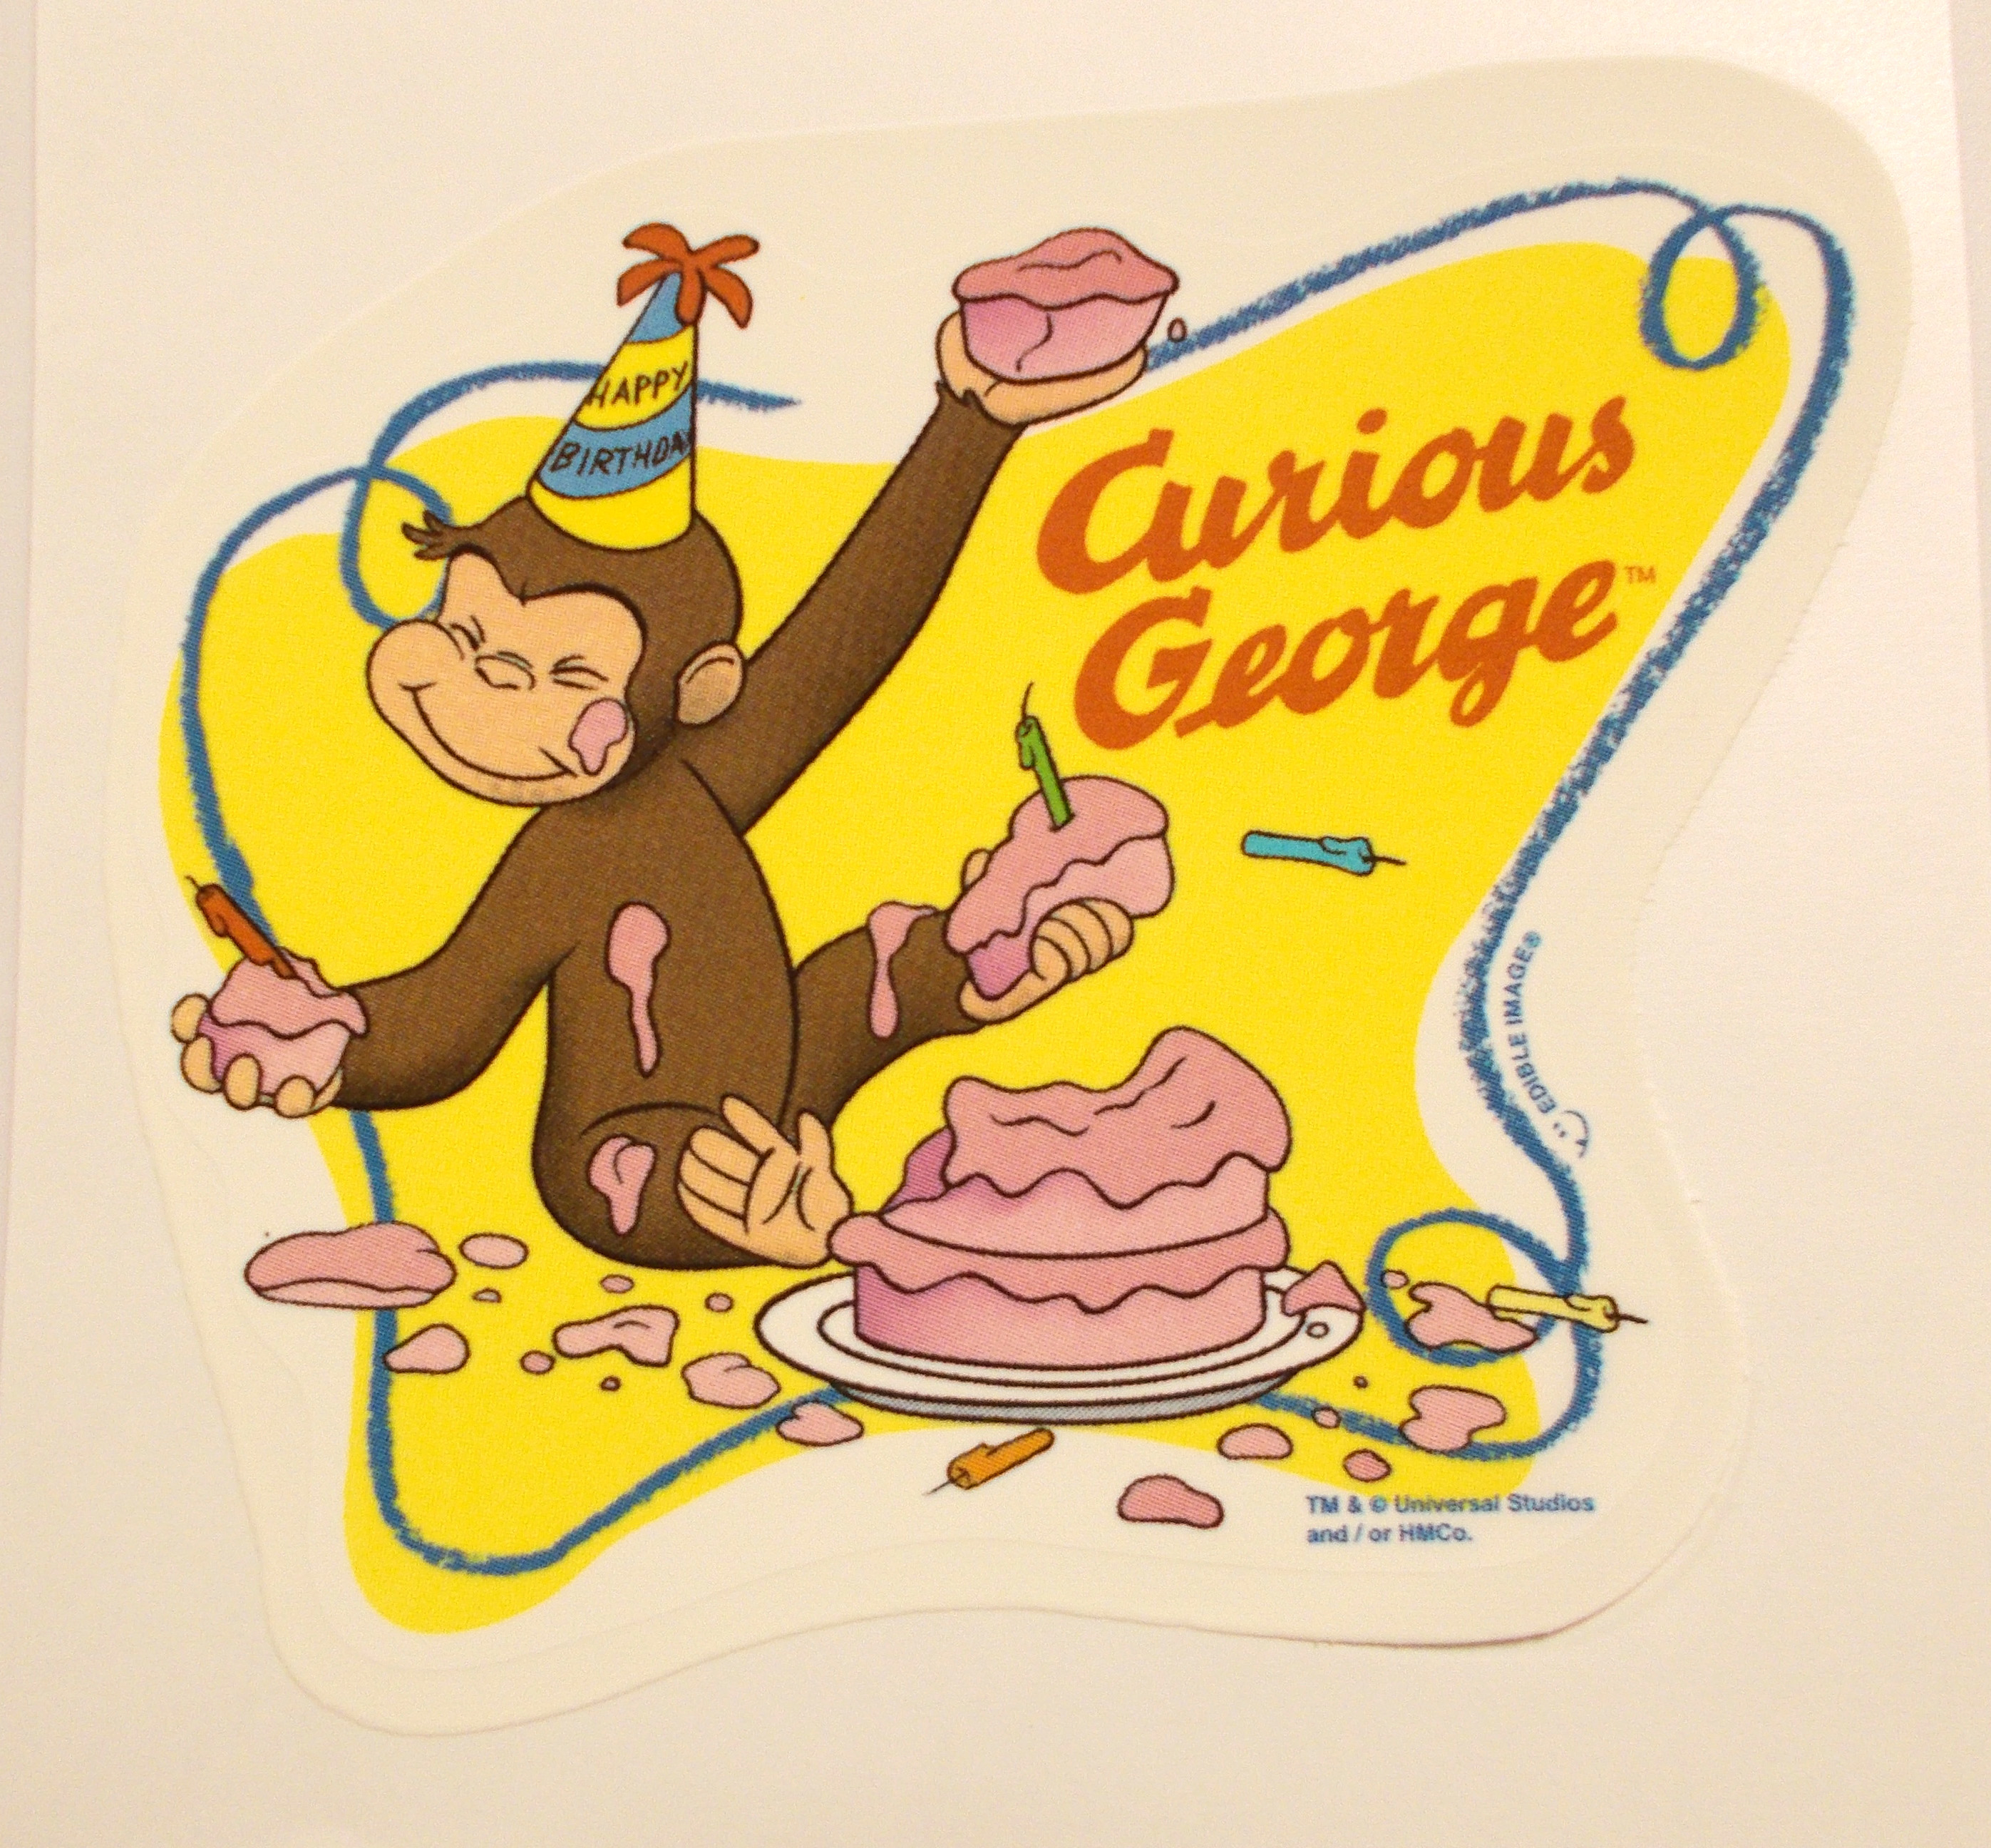 Pin mask example for kids more cake on pinterest for Curious george cake template